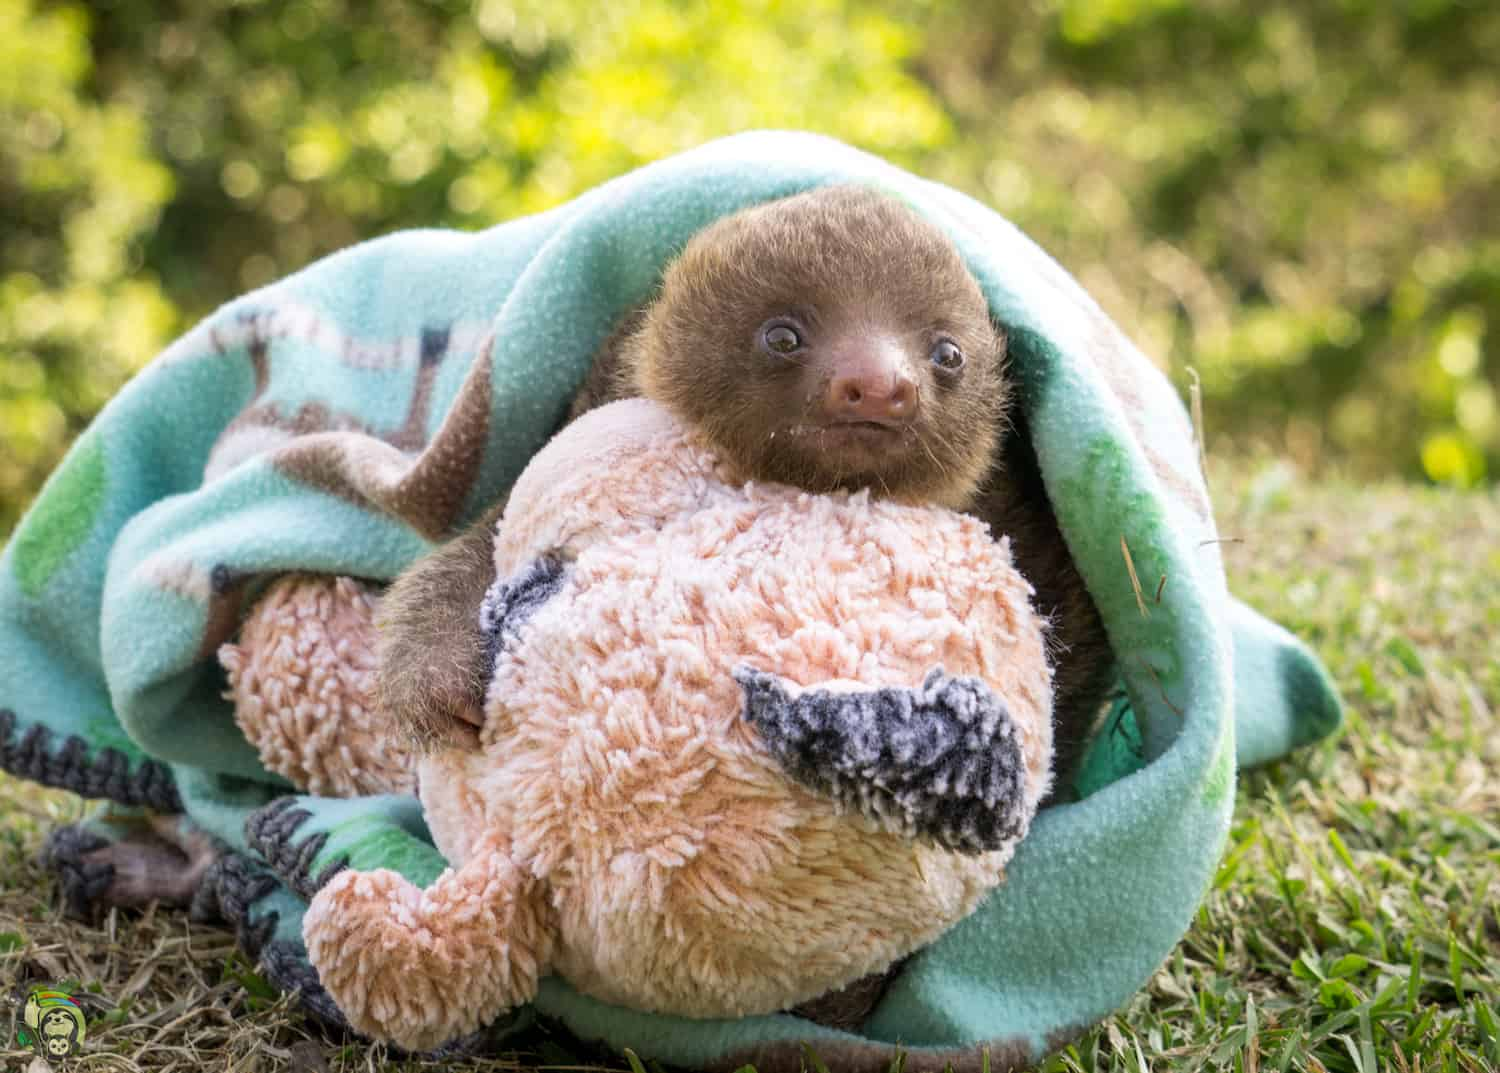 Bodhi, a two-toed sloth in Costa Rica, was rescued and brought to Toucan Rescue Ranch.